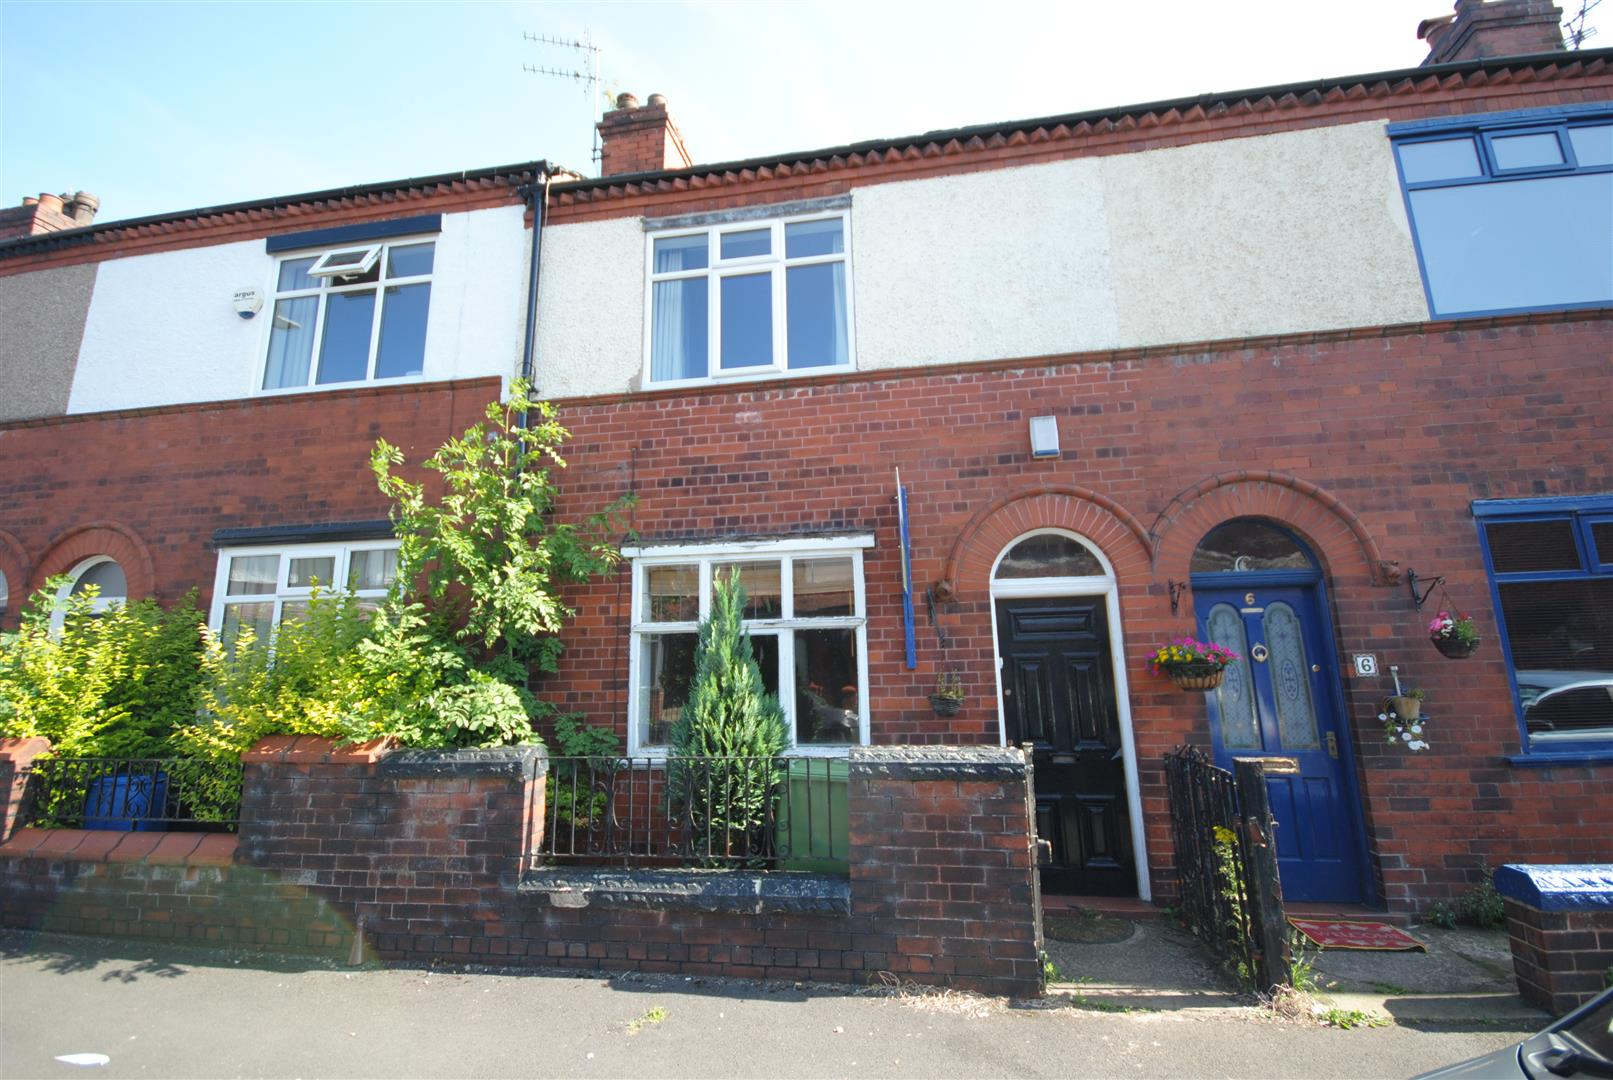 3 Bedrooms Terraced House for sale in Hornby Street, Swinley, Wigan